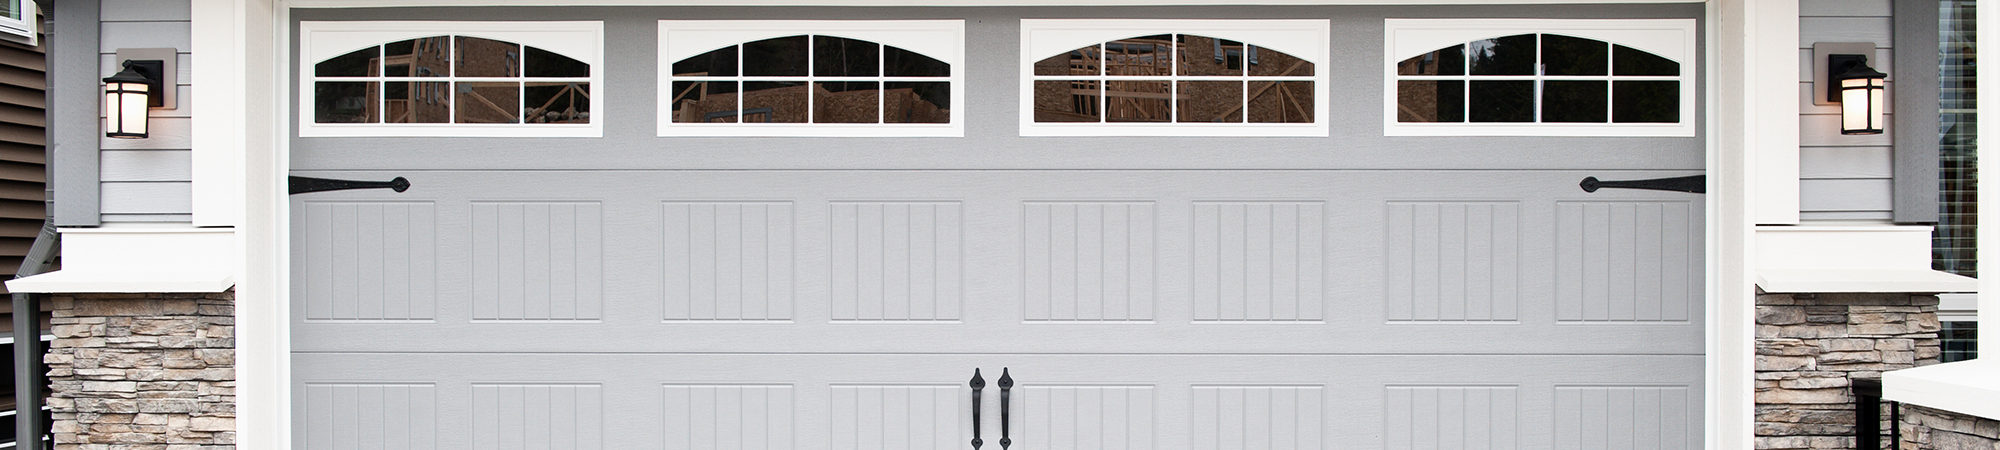 Garage Doors Garber Building Supplies Amp Garber S Do It